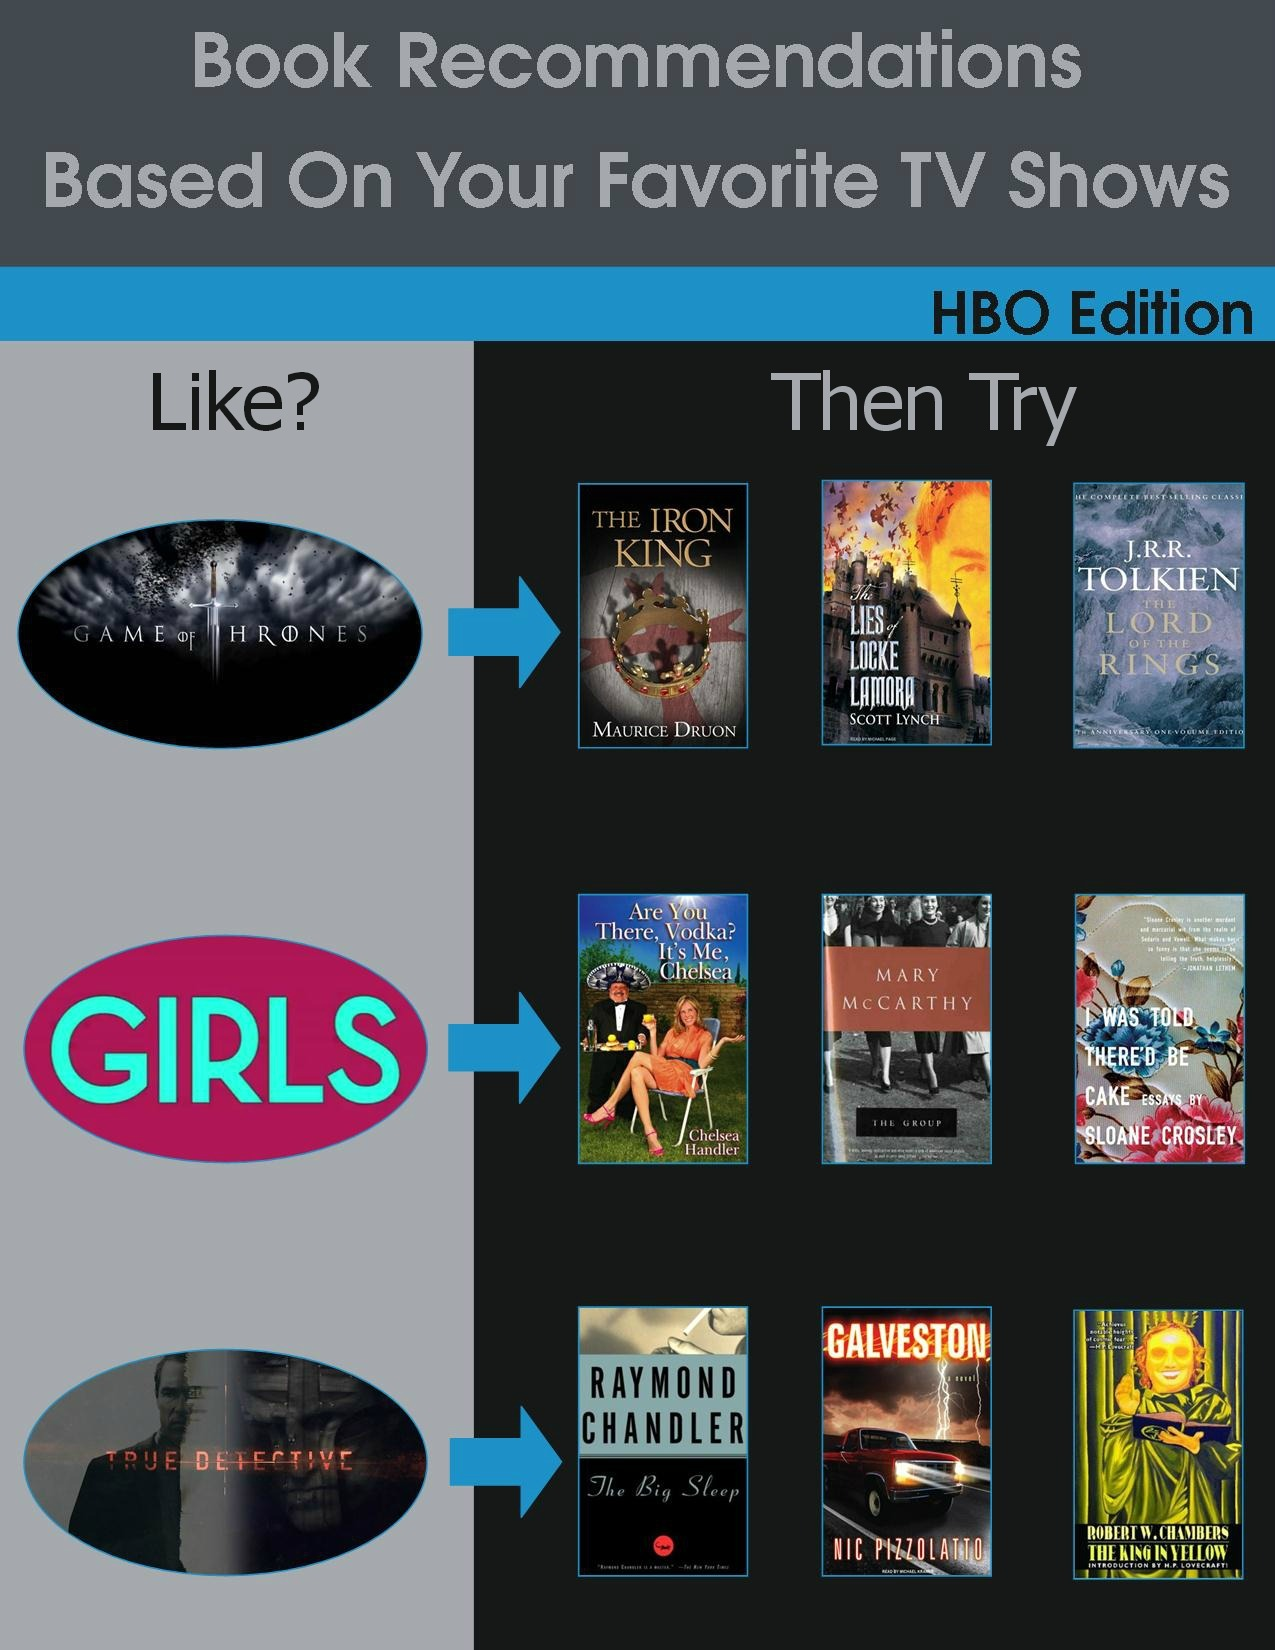 Book Recommendations Based On Your Favorite TV Shows - HBO Editon